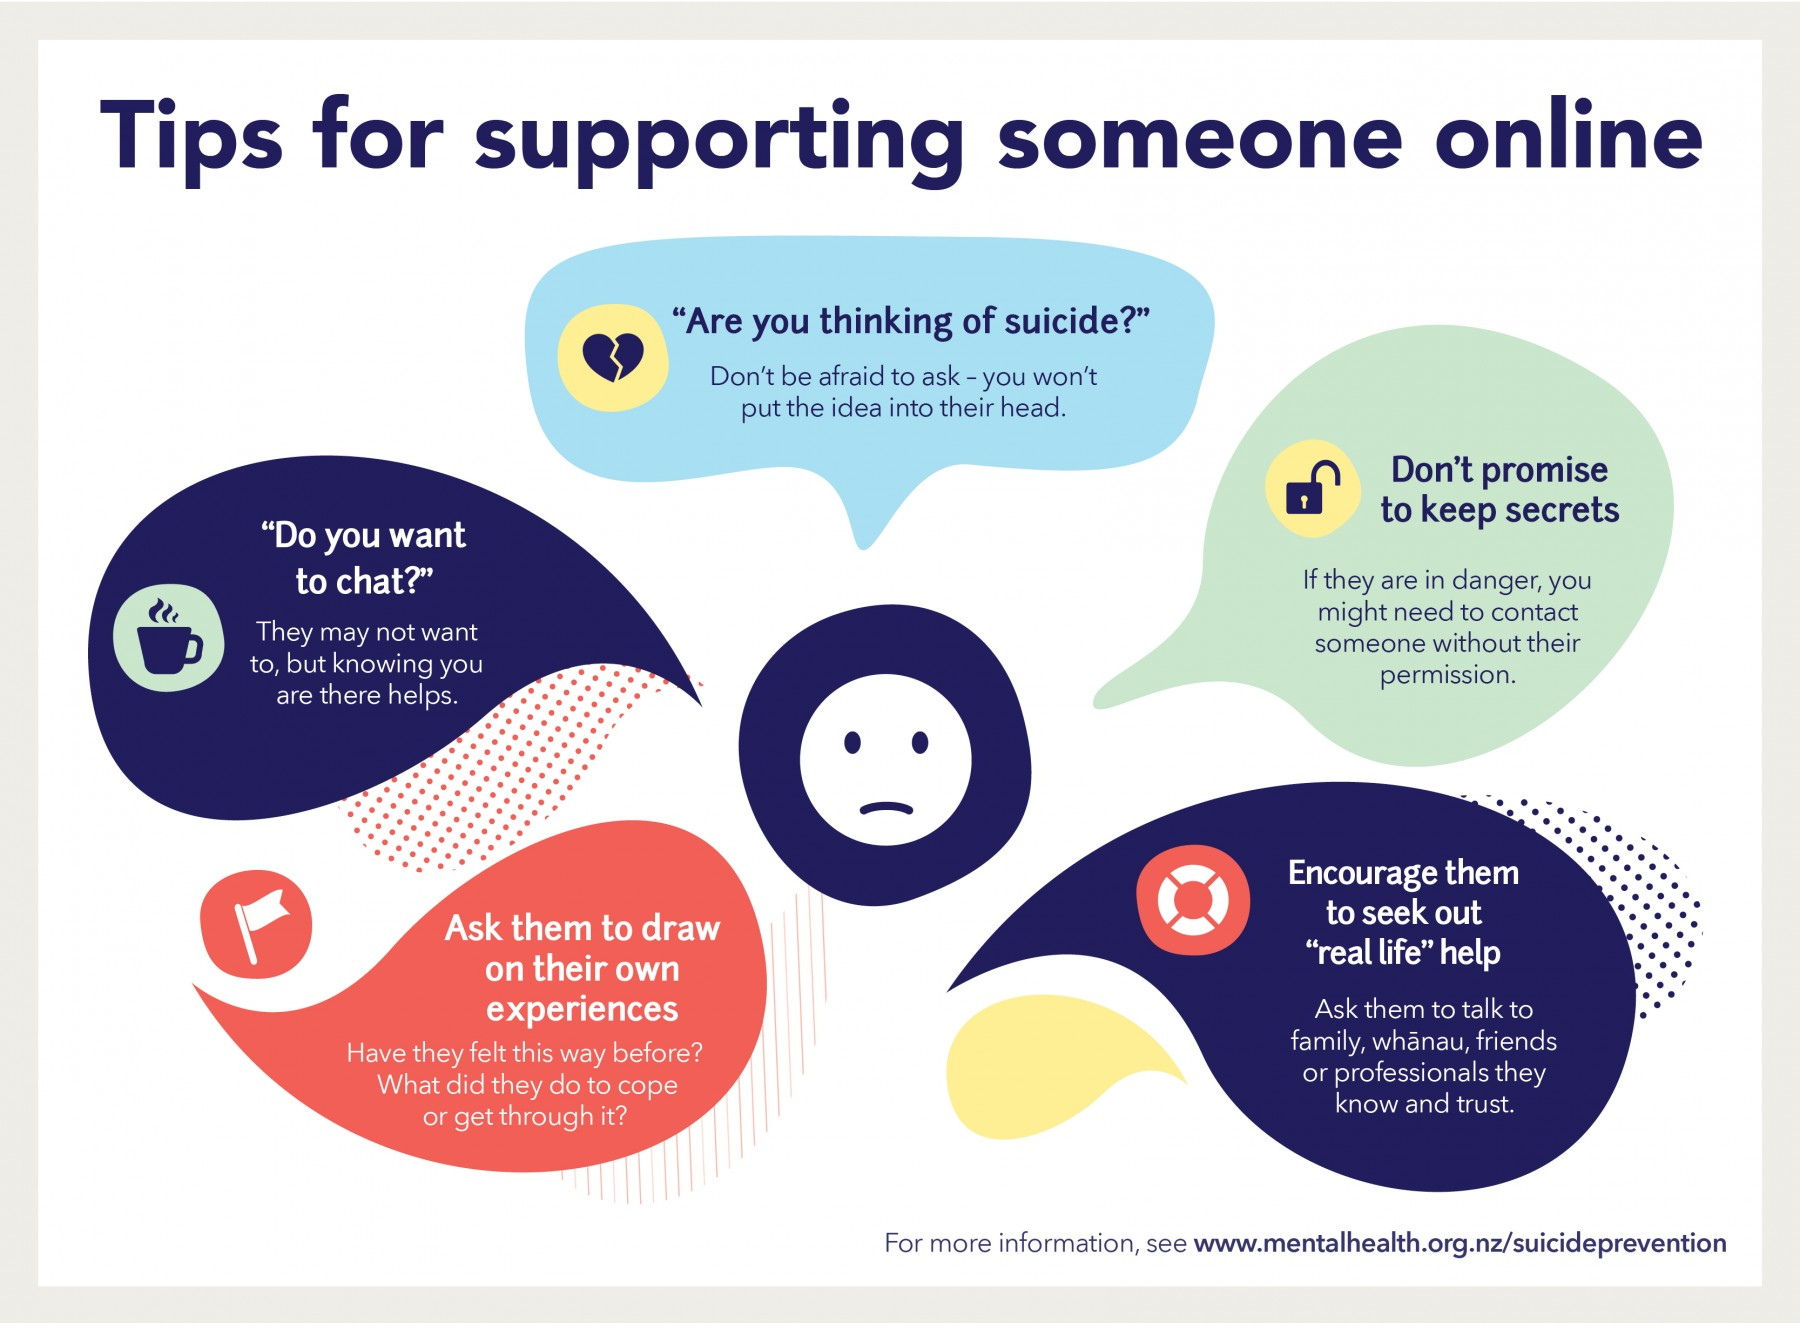 Tips for supporting someone online